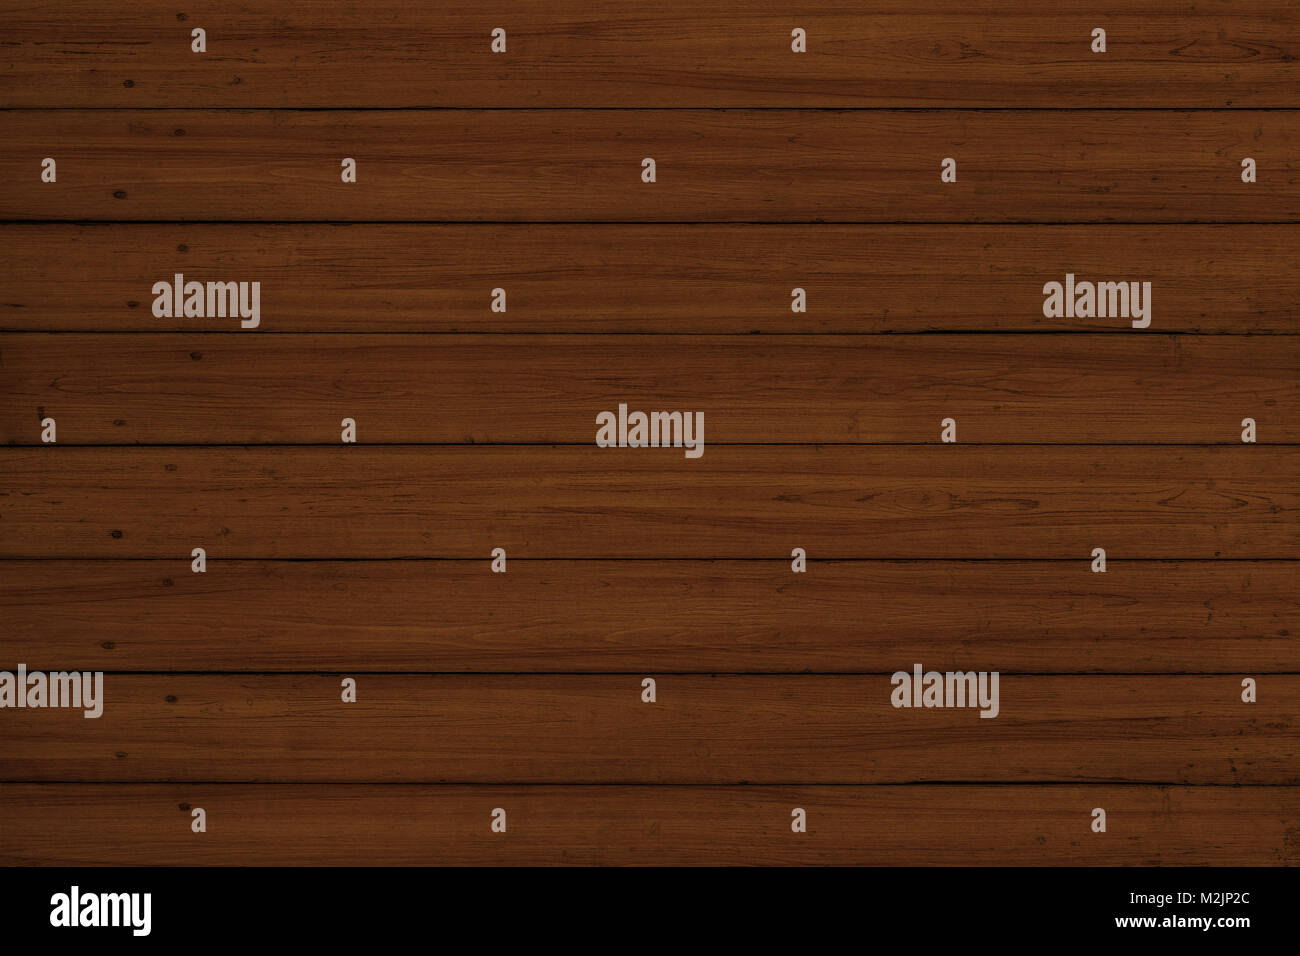 grunge wood panels wooden texture background wall stock photo